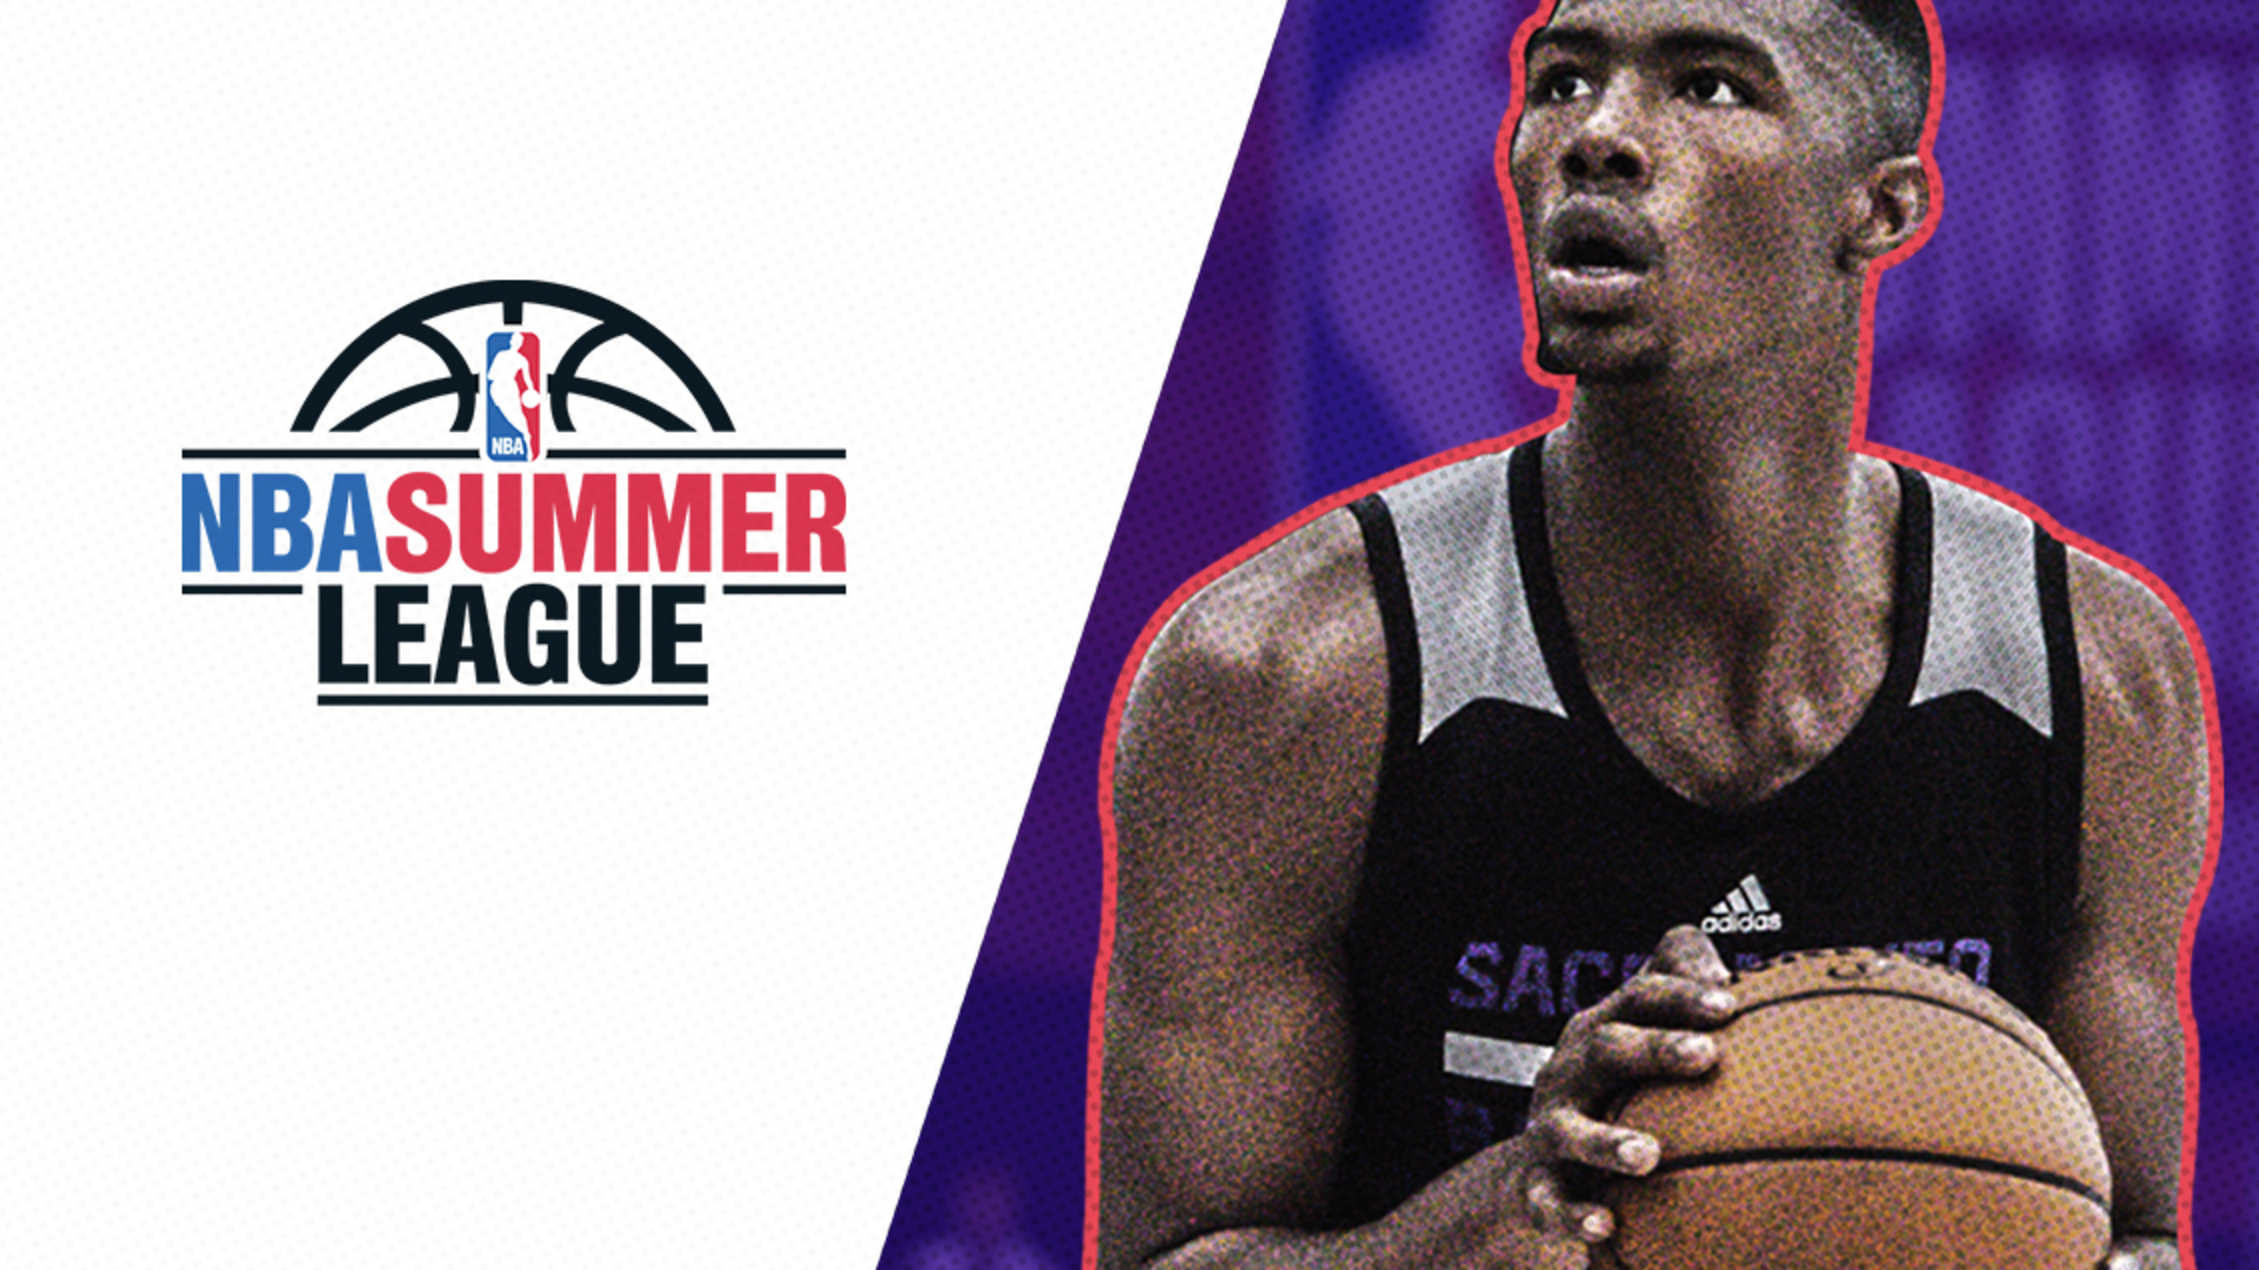 NBA Summer League 2019 Watch Online